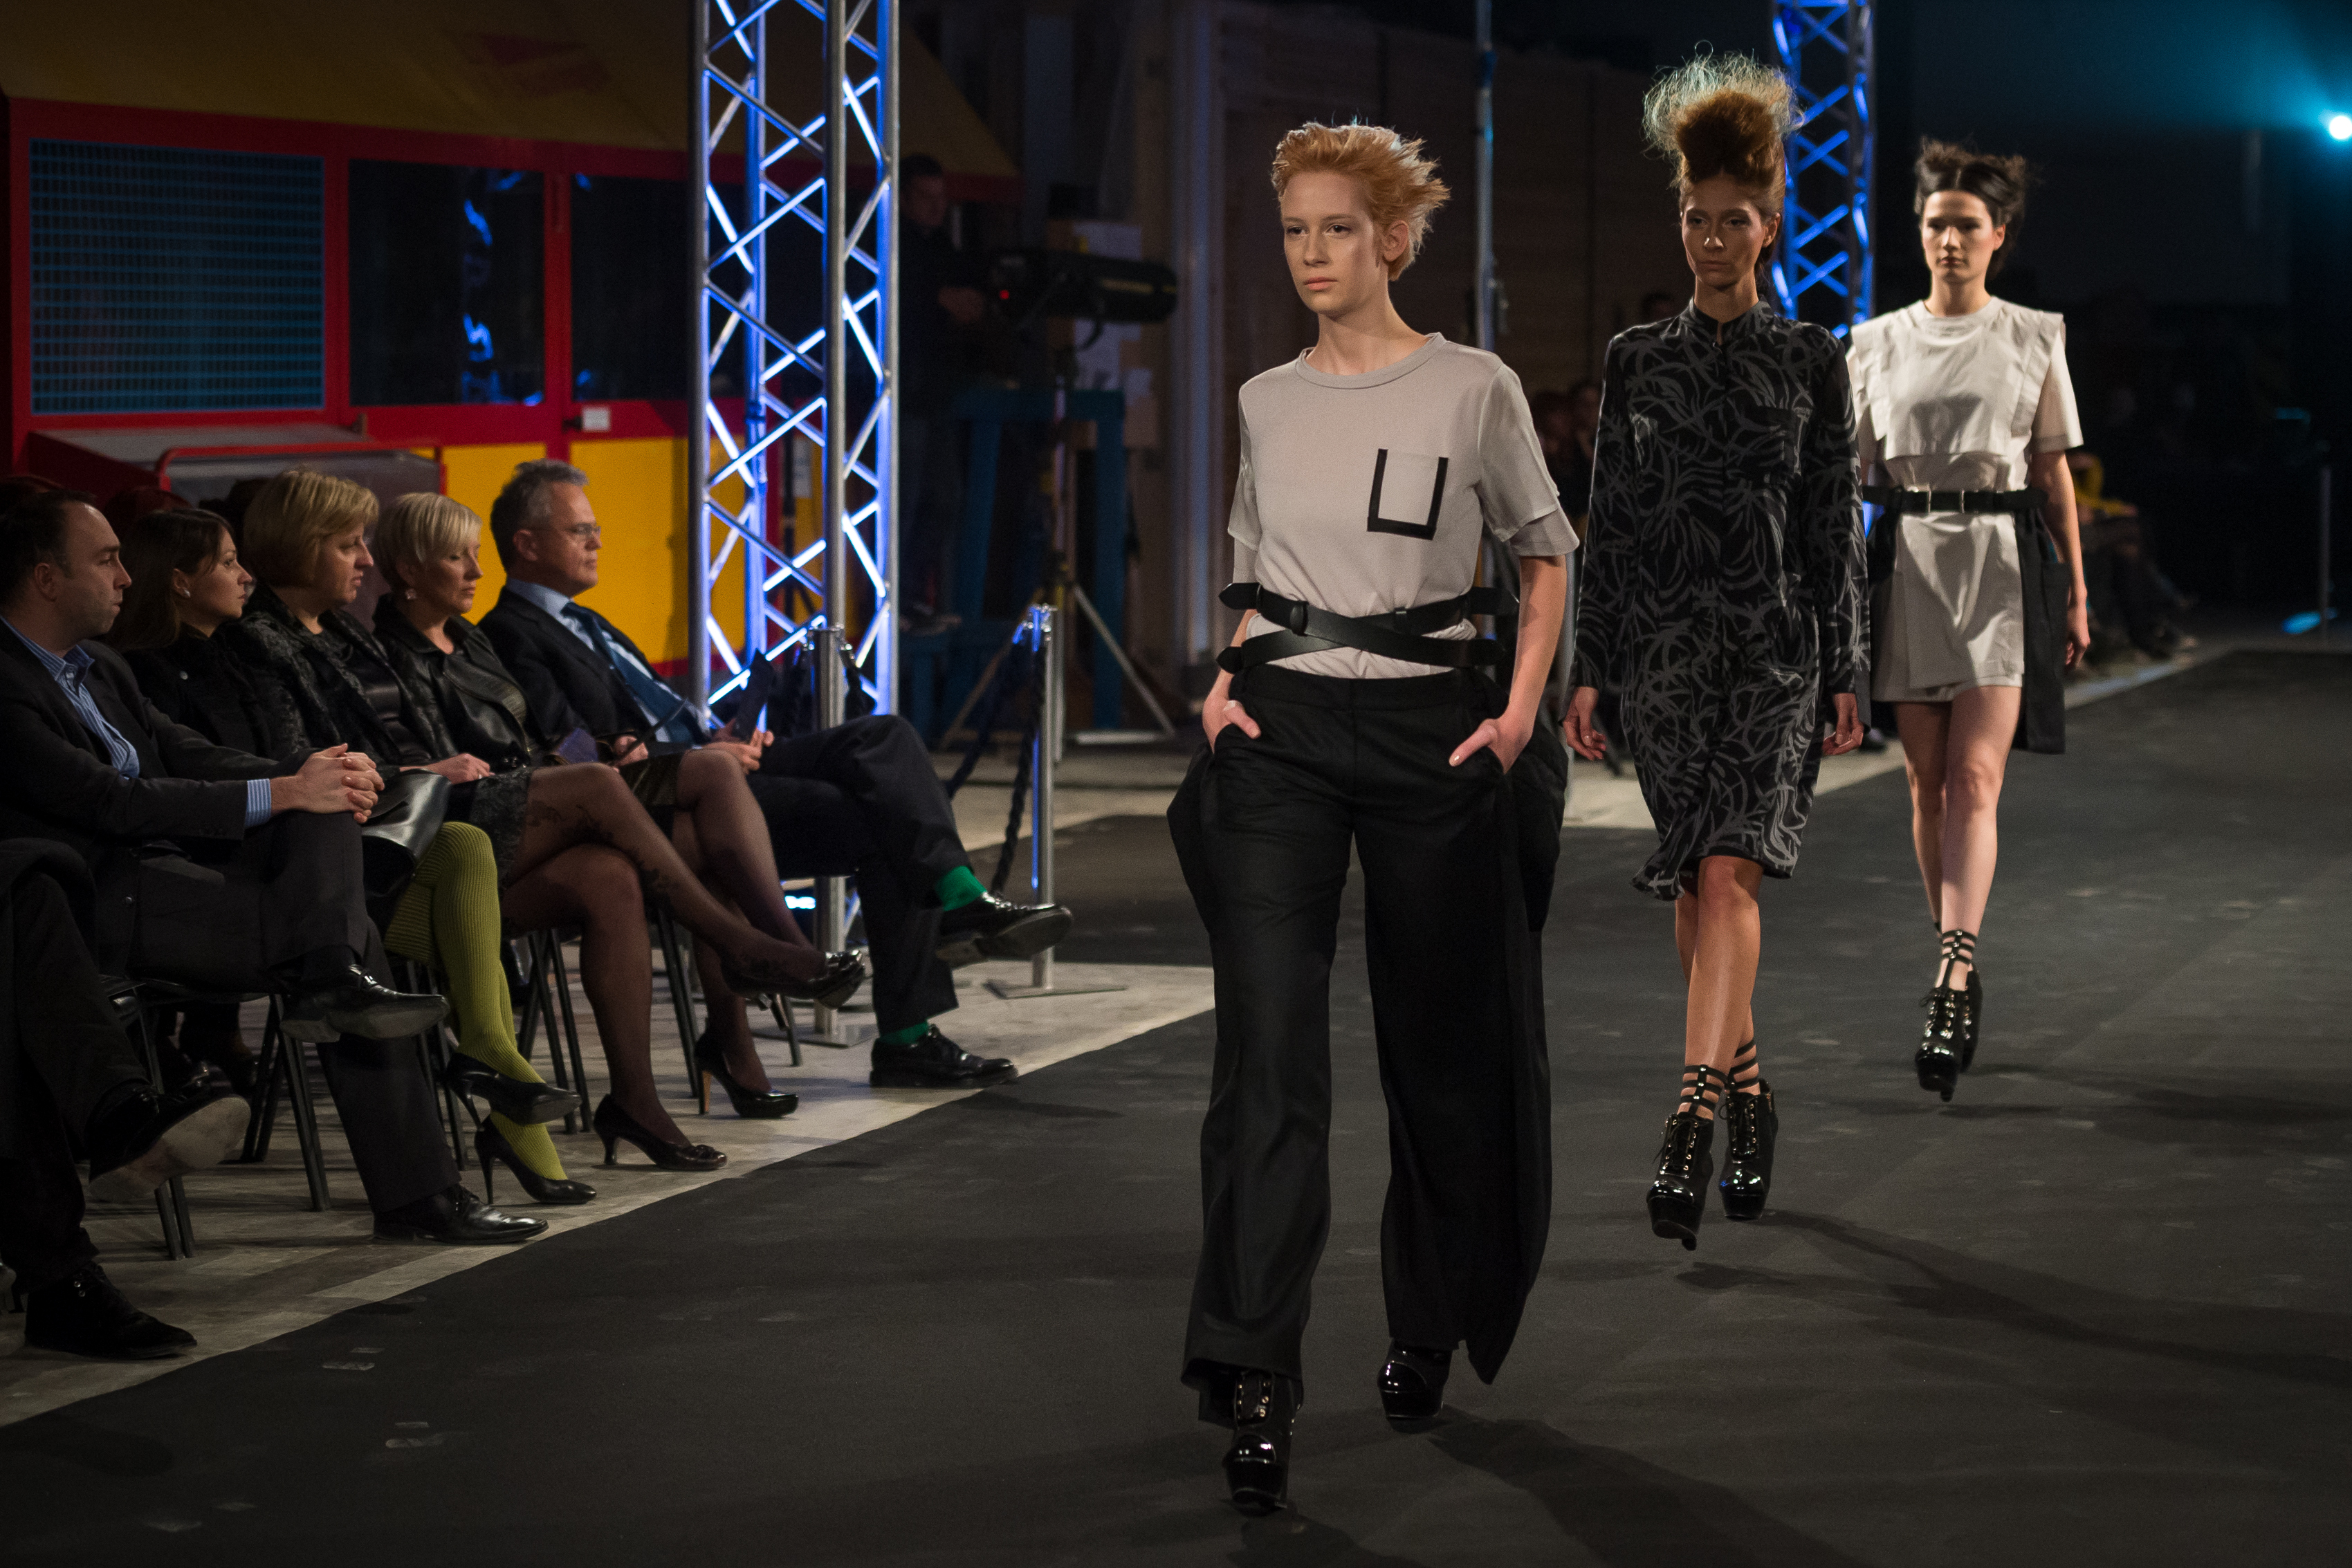 Fashion show in the production hall of Riko Hiše